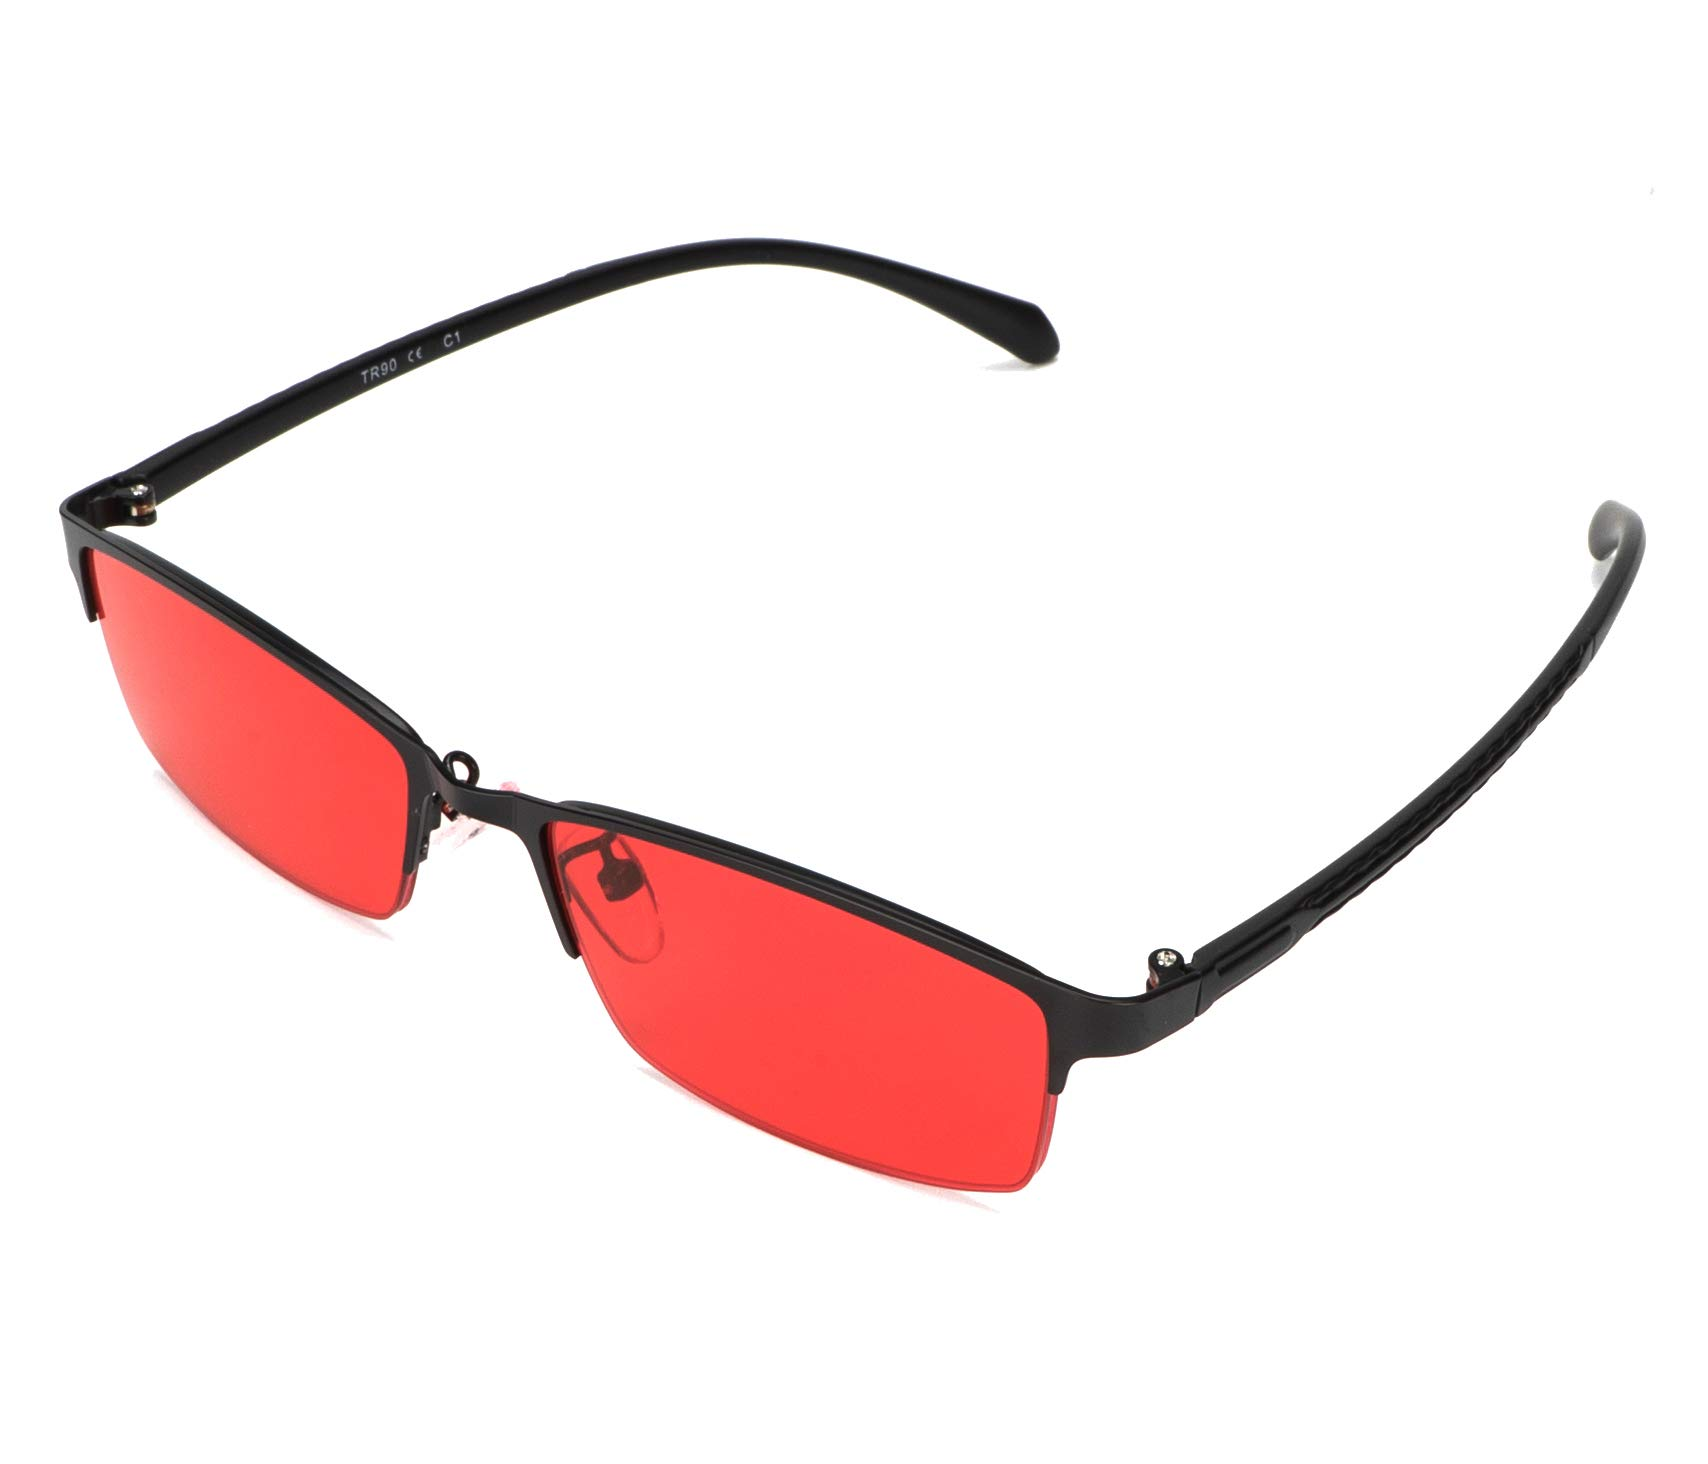 STBJ Color Blind Glasses for Men and Women with Red-Green Blindness, Color  Vision Disorder, Color Weakness (Fullframe)